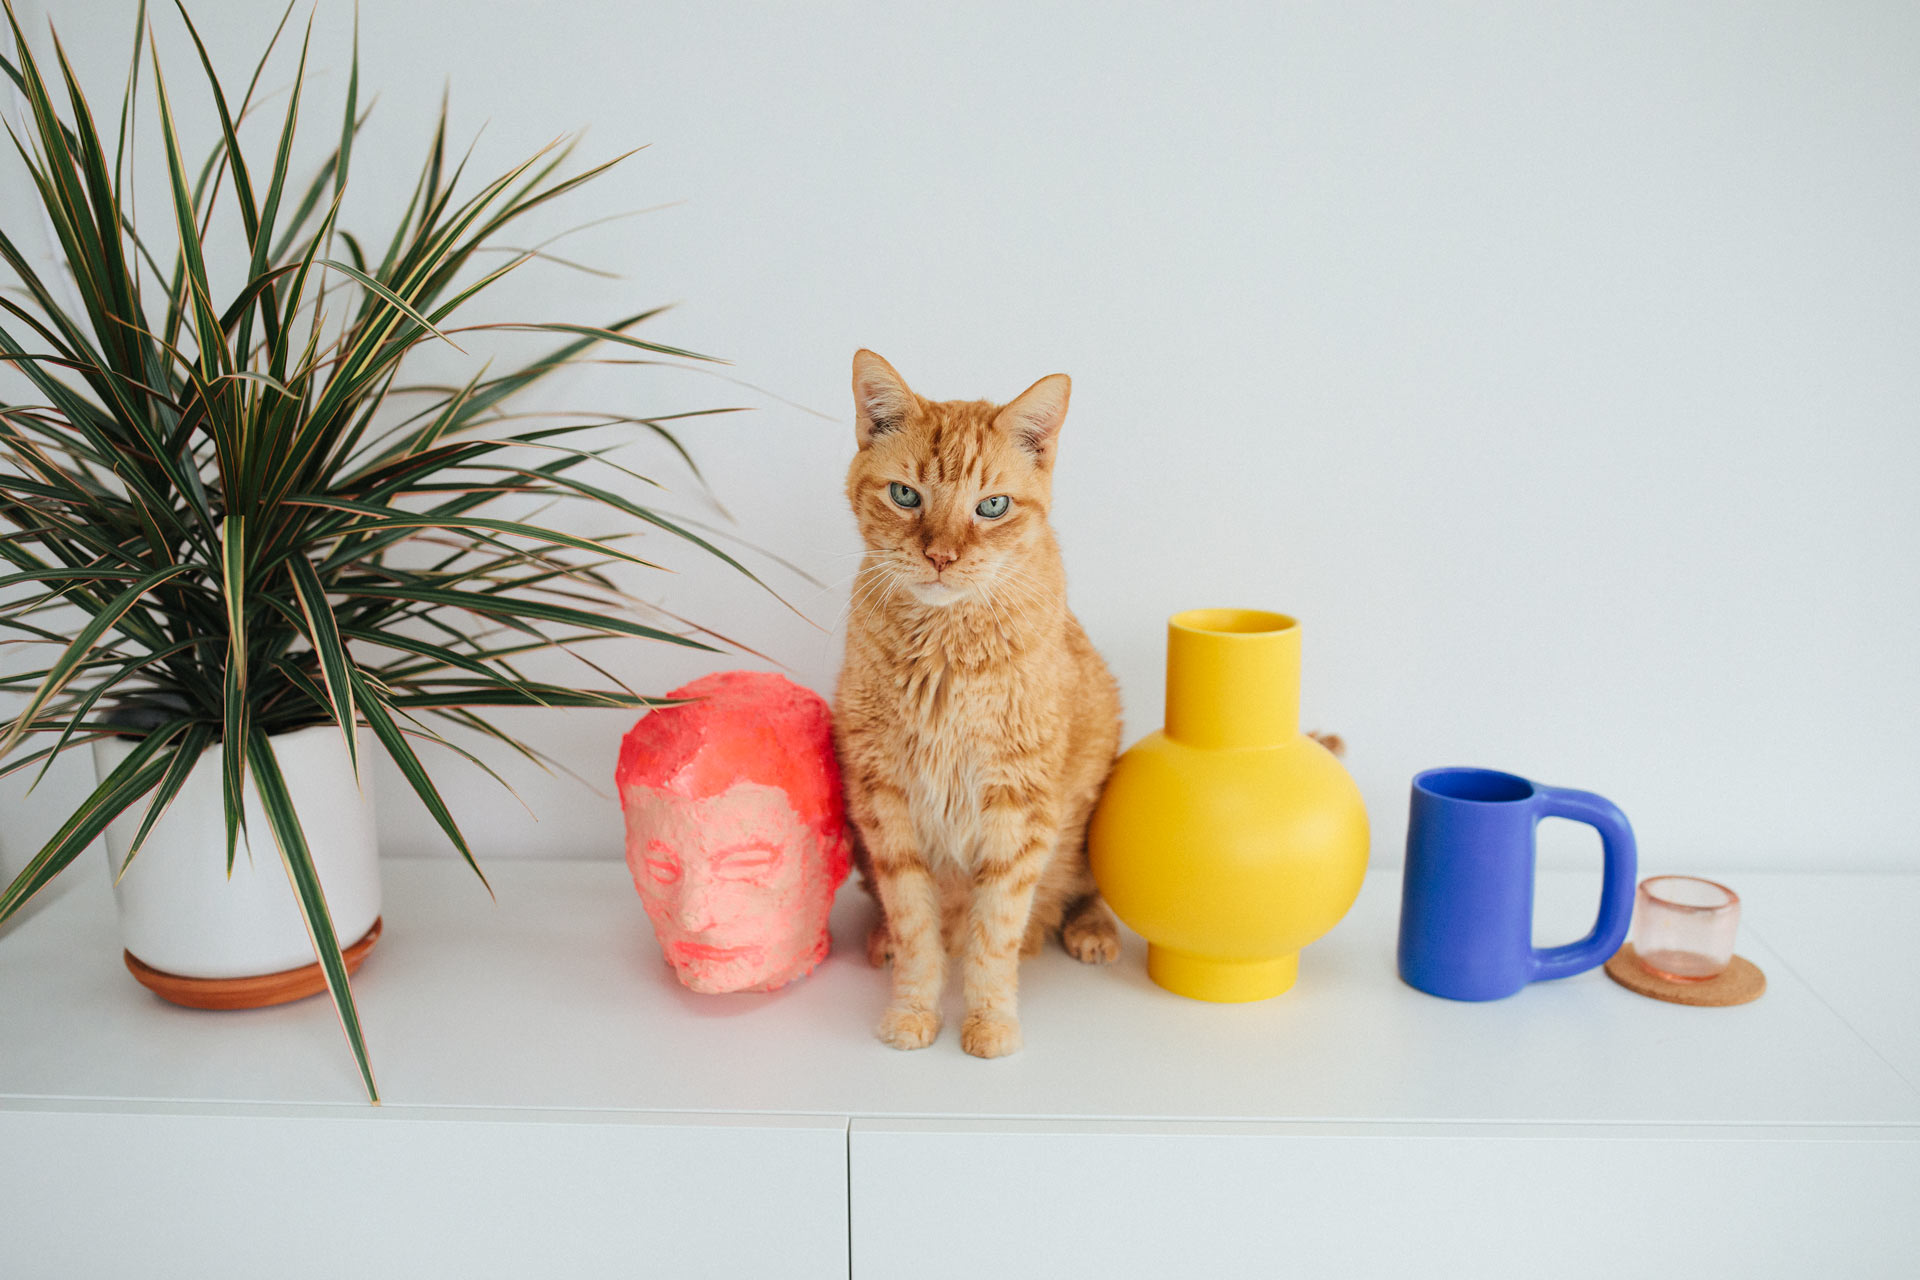 Portrait of Leo the orange cat sitting with a plant and ceramic vases and mugs in Brooklyn, NY